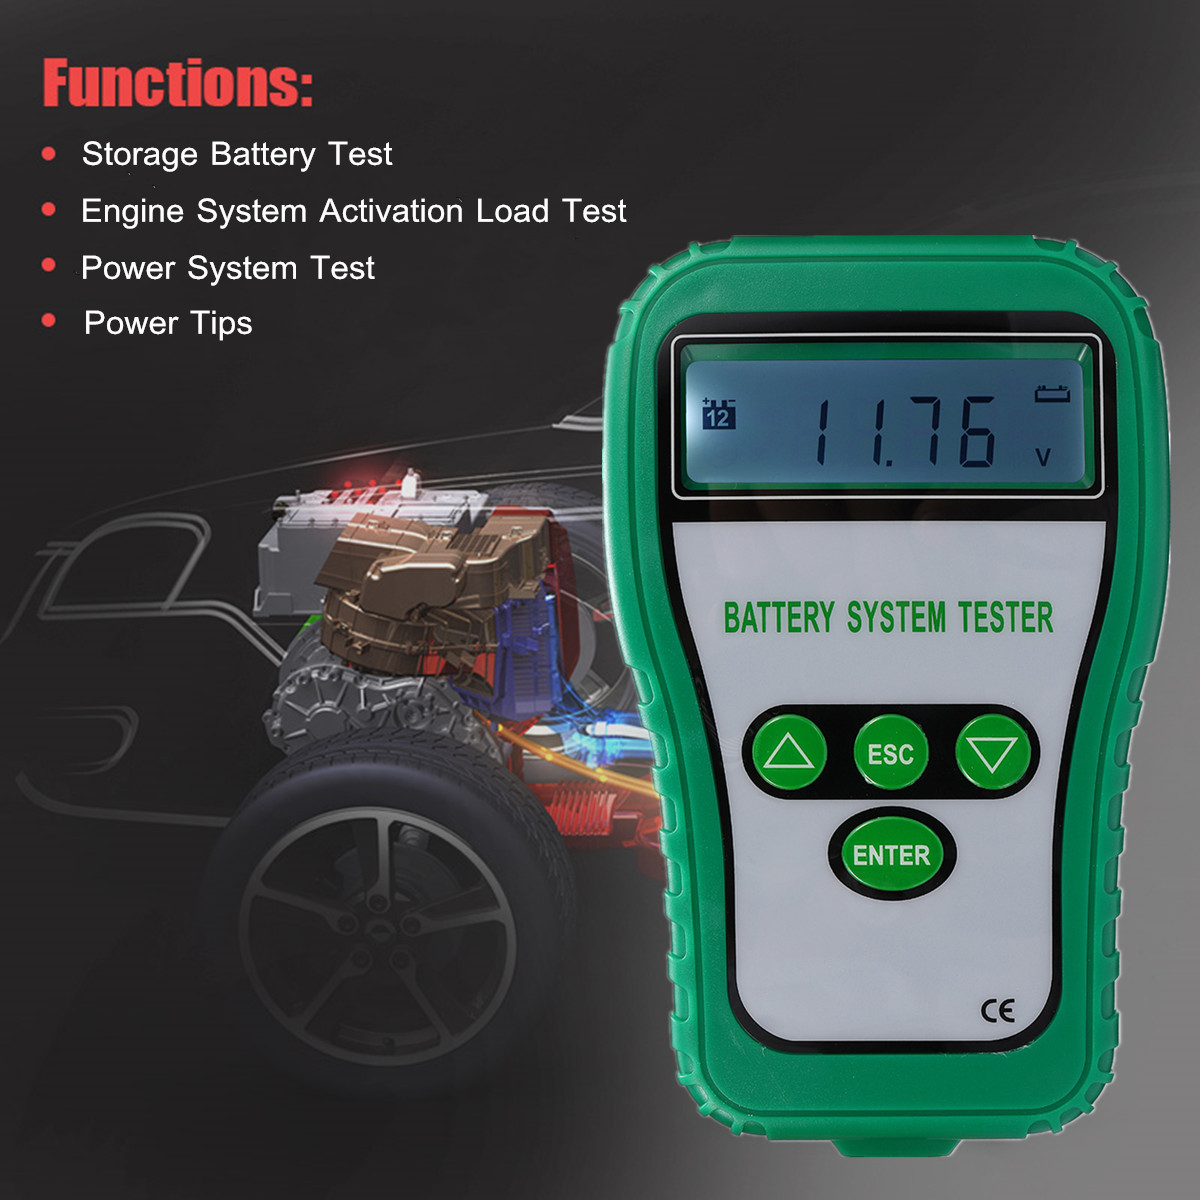 Digital Battery Tester Analyzer Alternator Battery System Tester 12V LCD Cranking Amps Battery Resistance Voltage Life Analysis motopower grey 12v smart digital battery tester voltmeter alternator analyzer with lcd and led display for car motorcycle boat